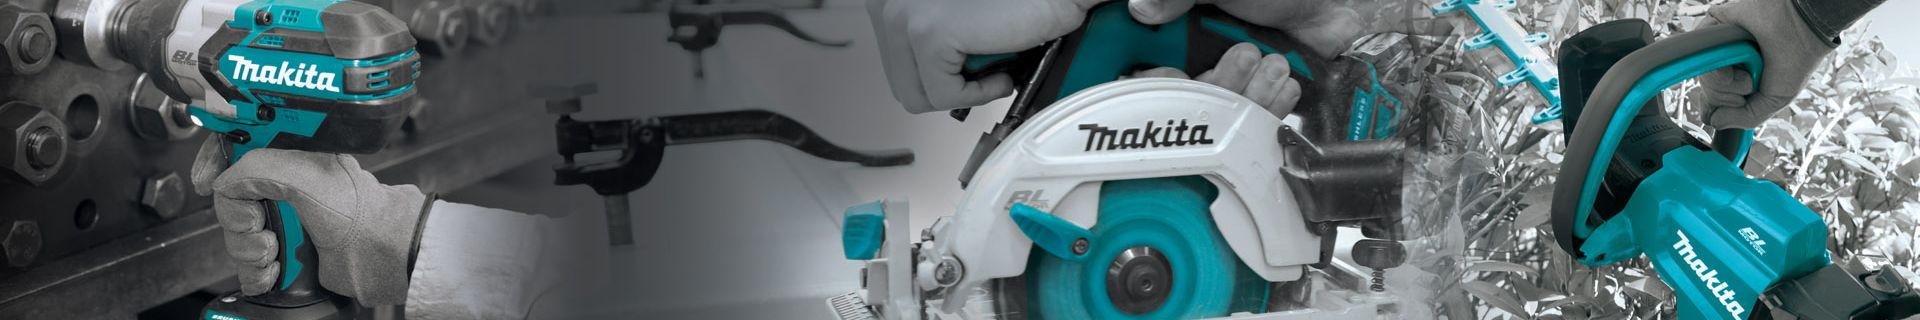 Makita drill, saw and hedge trimmer.